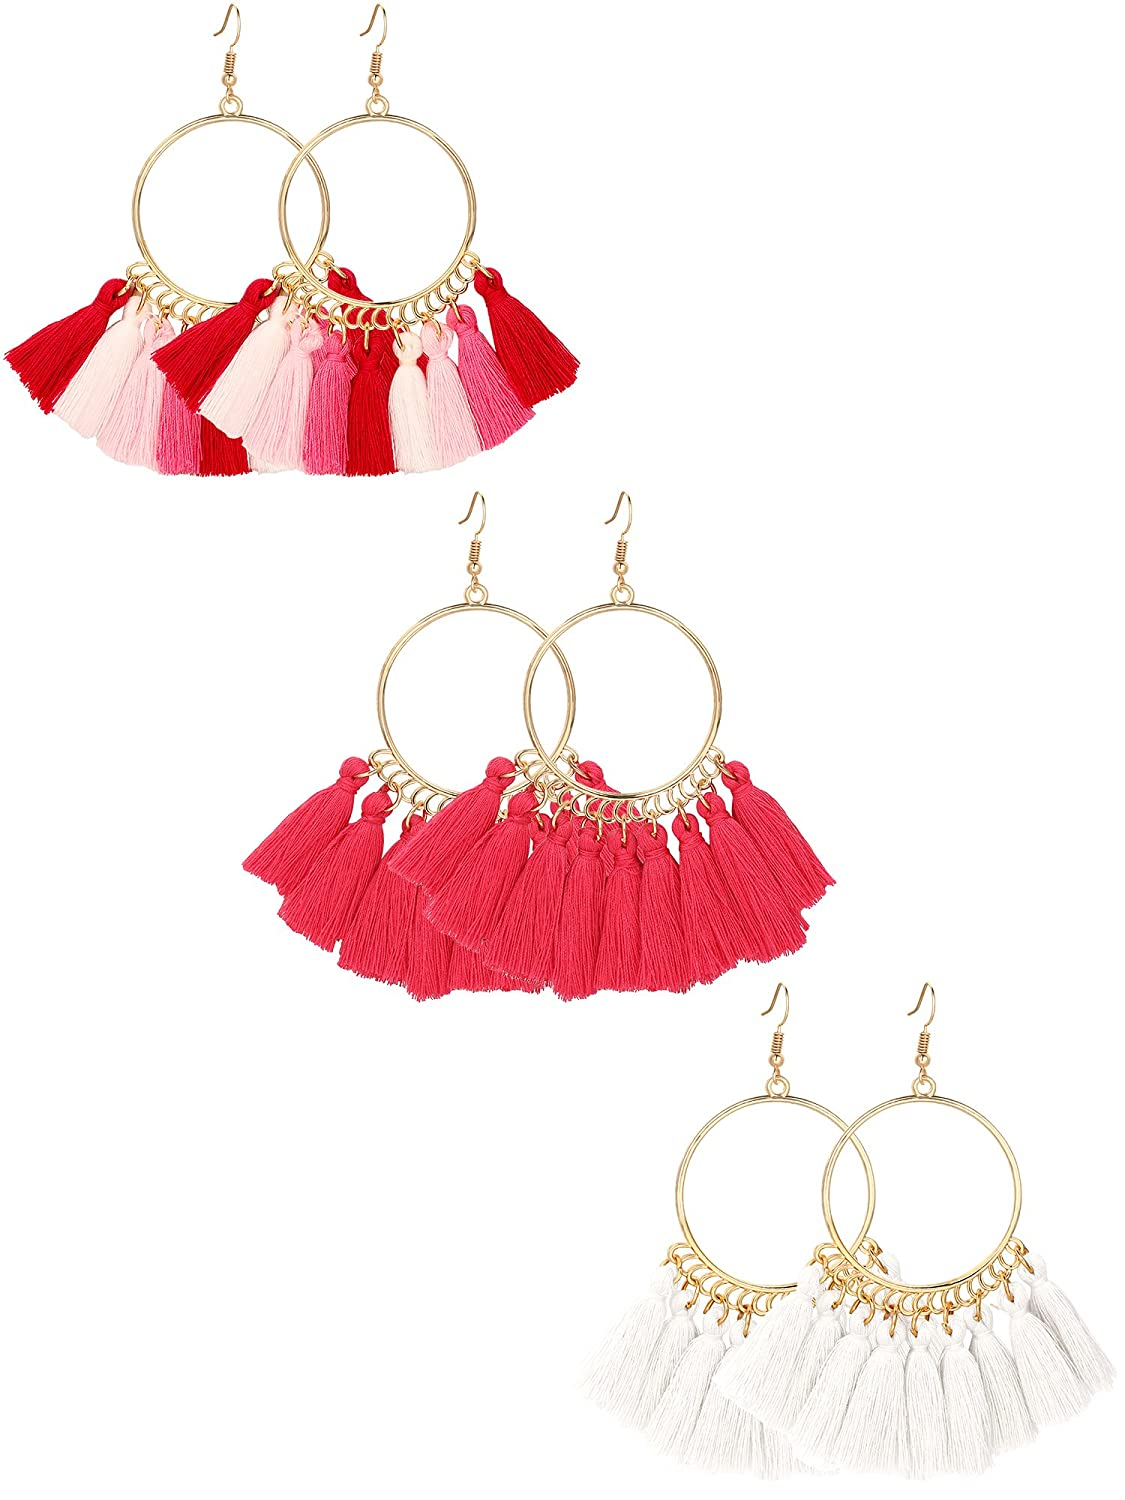 Gejoy Tassel Hoop Earrings Fan-shaped Drop Earrings Dangle Eardrop for Women Girls Party Bohemia Dress Accessory, 3 Pairs 3 Pairs (multicolor peach beige) Gejoy-Earrings-01